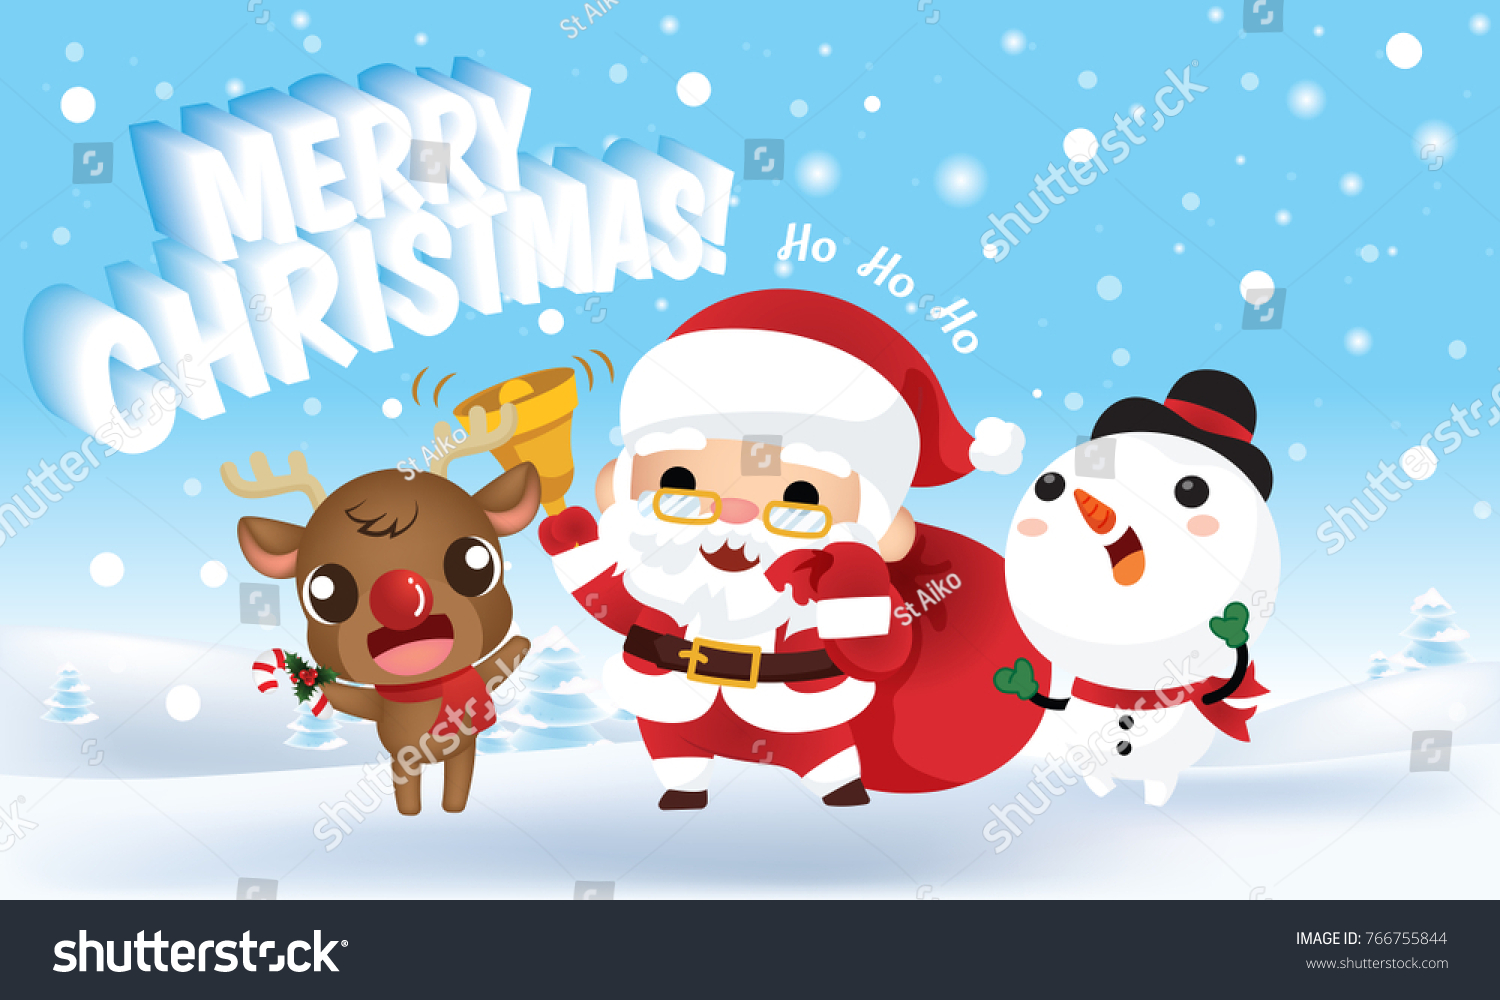 Cute cartoon santa claus gift bag 766755844 cute cartoon santa claus with gift bag standing with reindeer and snowman on winter snowing background negle Image collections